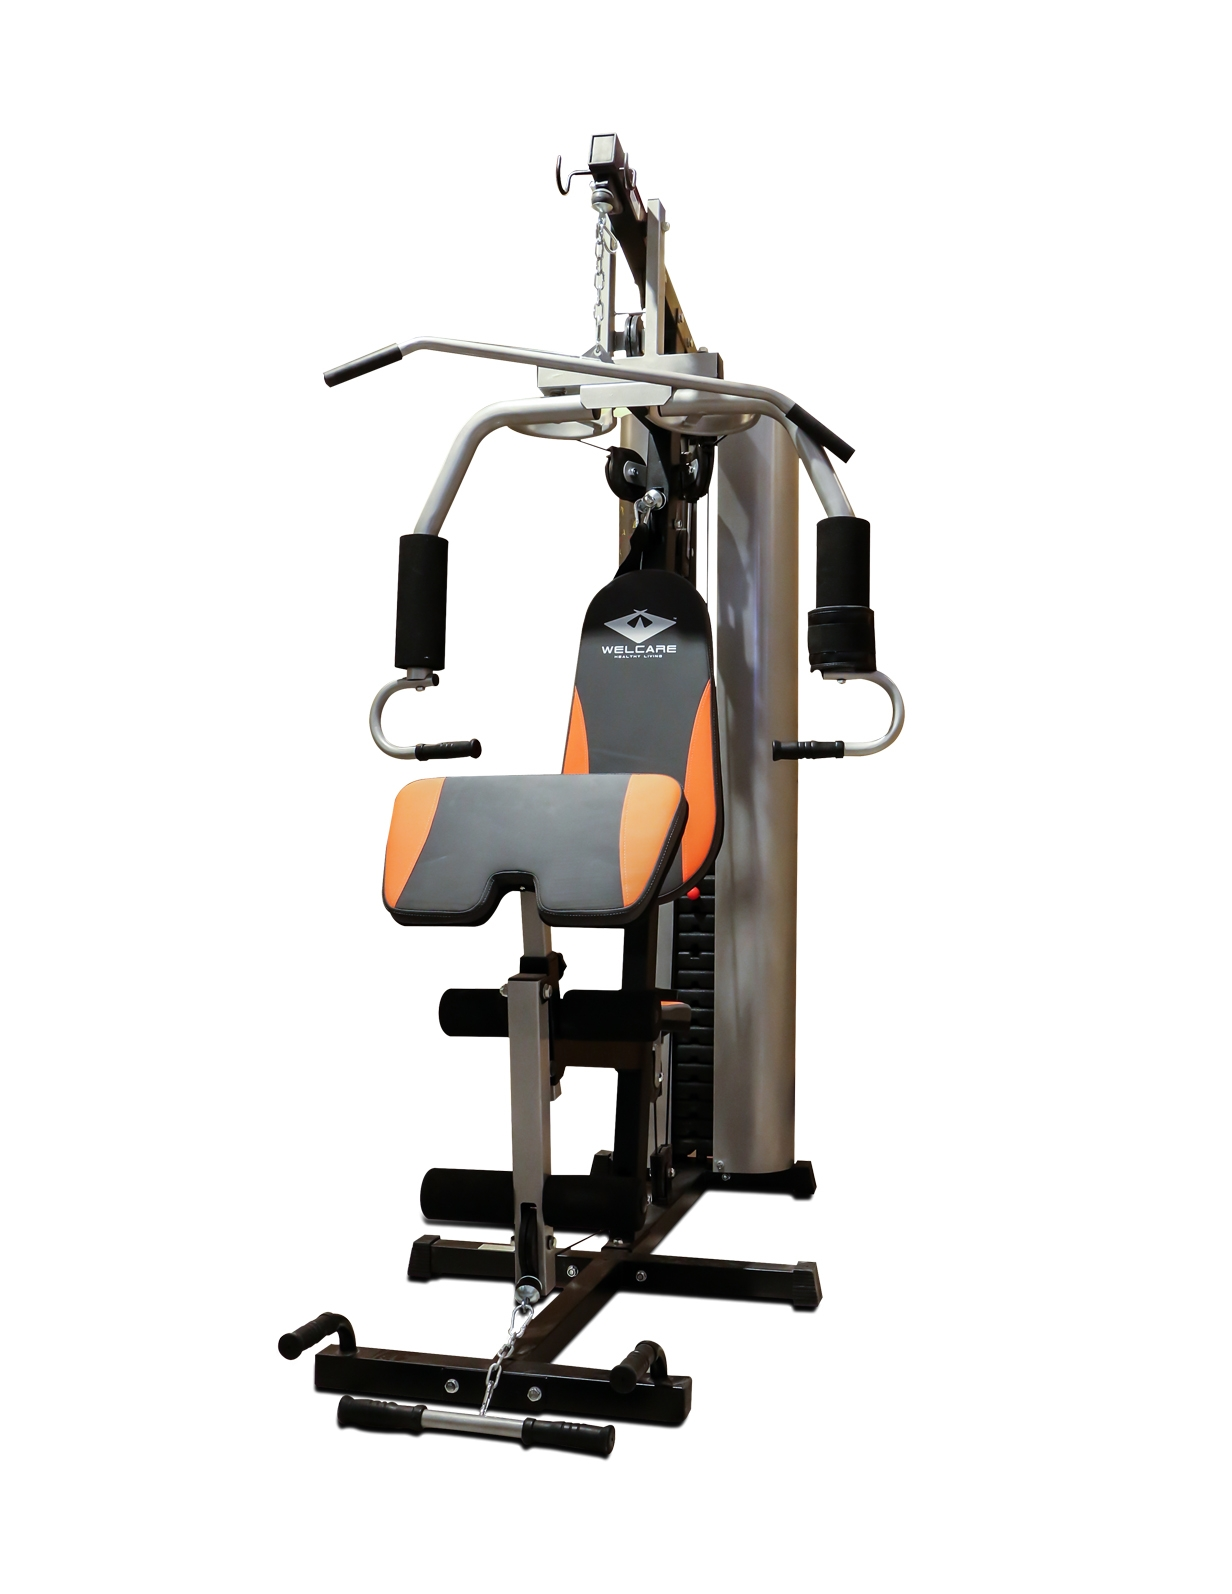 WC 4407 HOME GYM